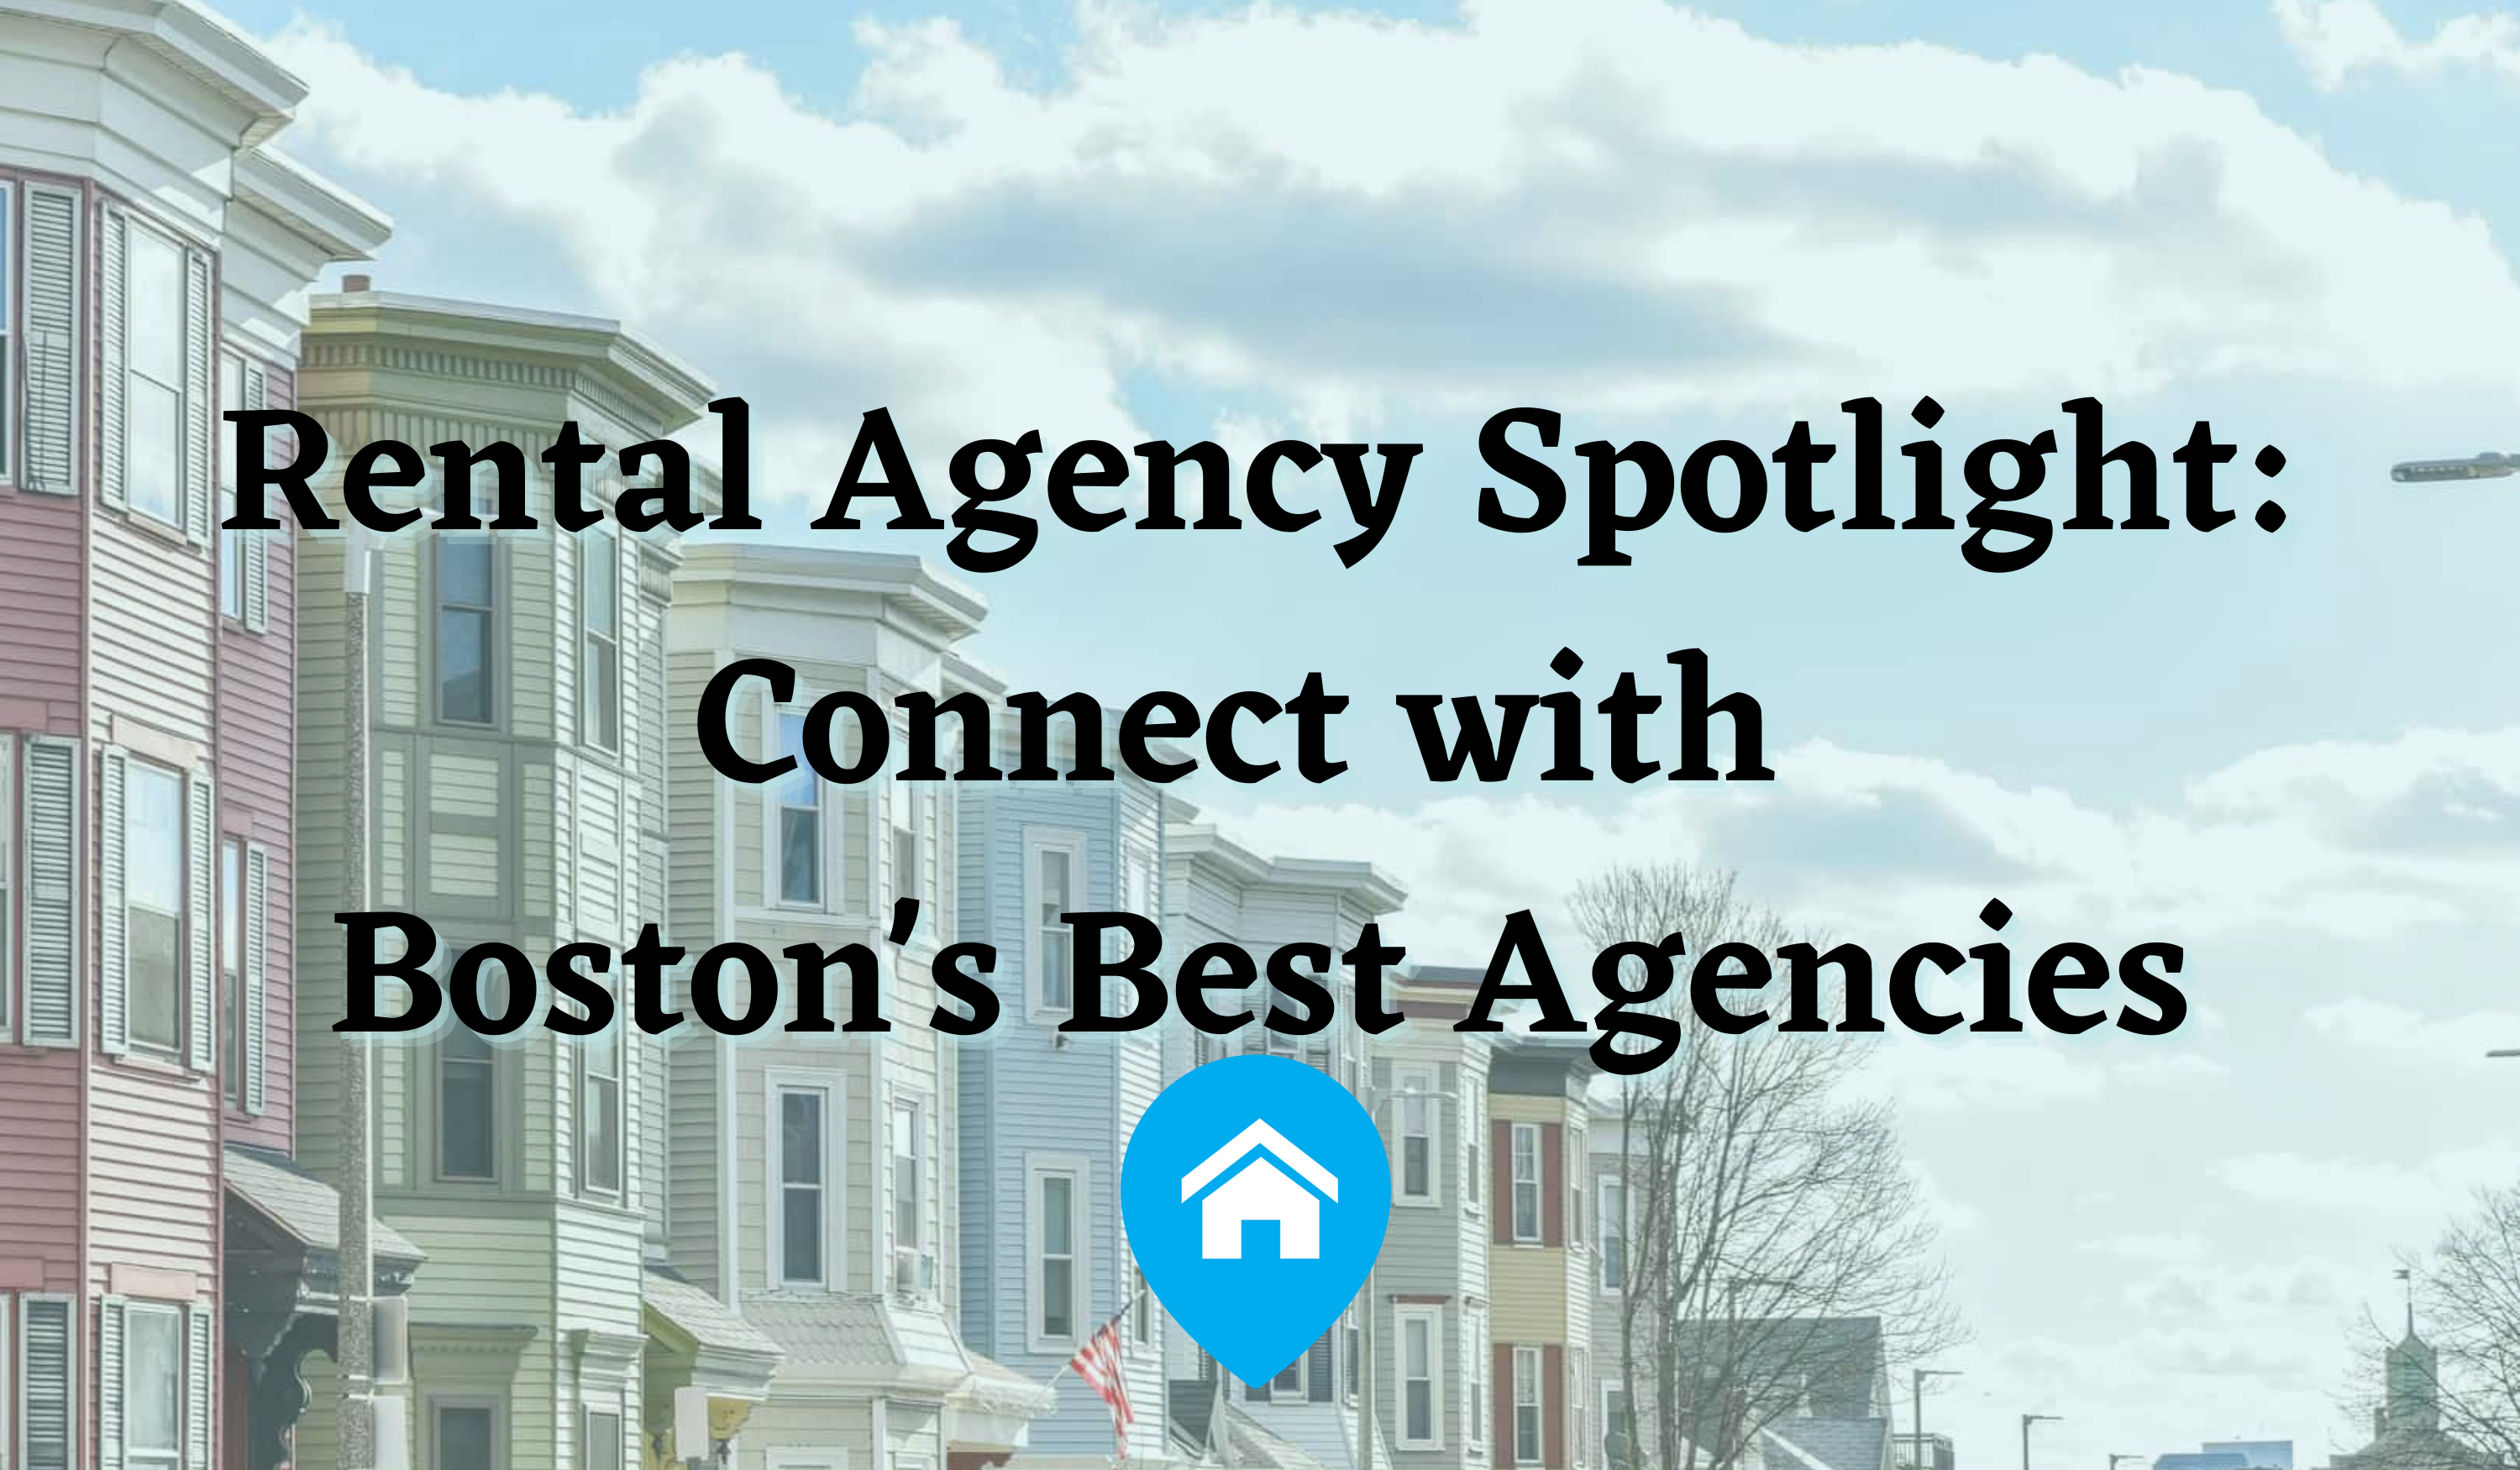 photo reading rental agency spotlight: connect with boston's best agencies with a faded photo of the south end boston